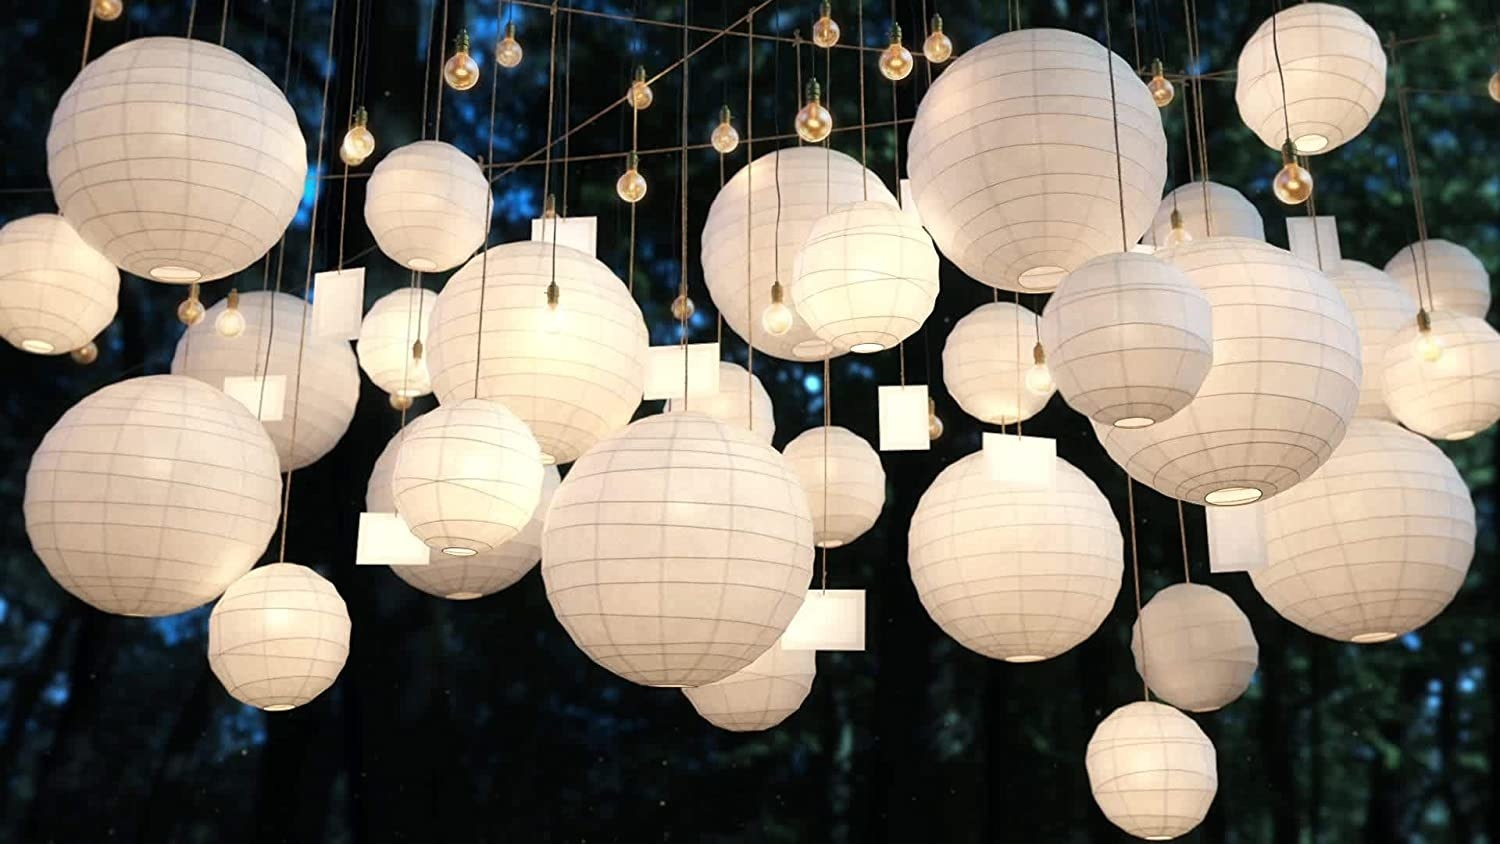 Paper lanterns and lights hung up on strings.